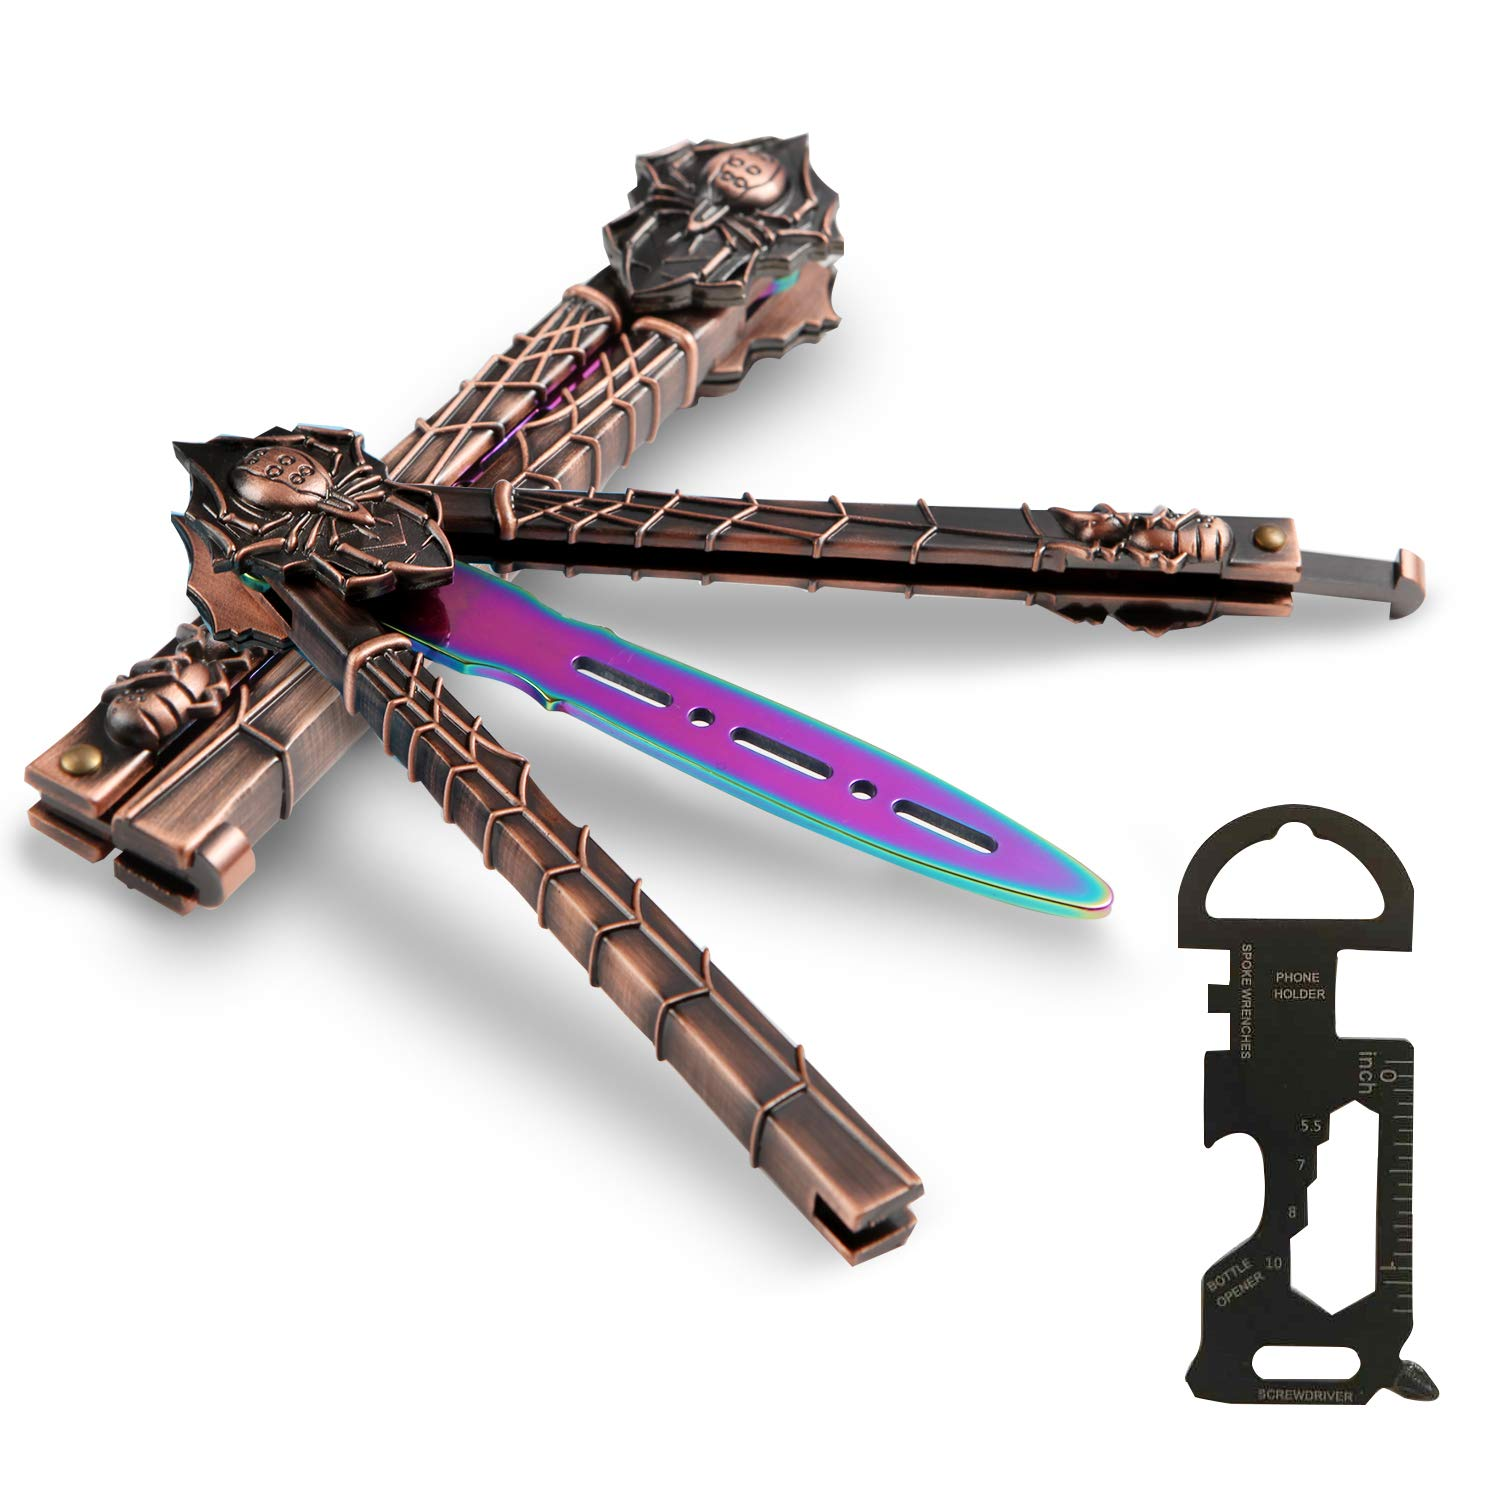 BenkerEsti Butterfly Knife Comb Trainer Balisong Trainer Colorful Design with Repair Tools Protective Cover Practice Butterfly Knife